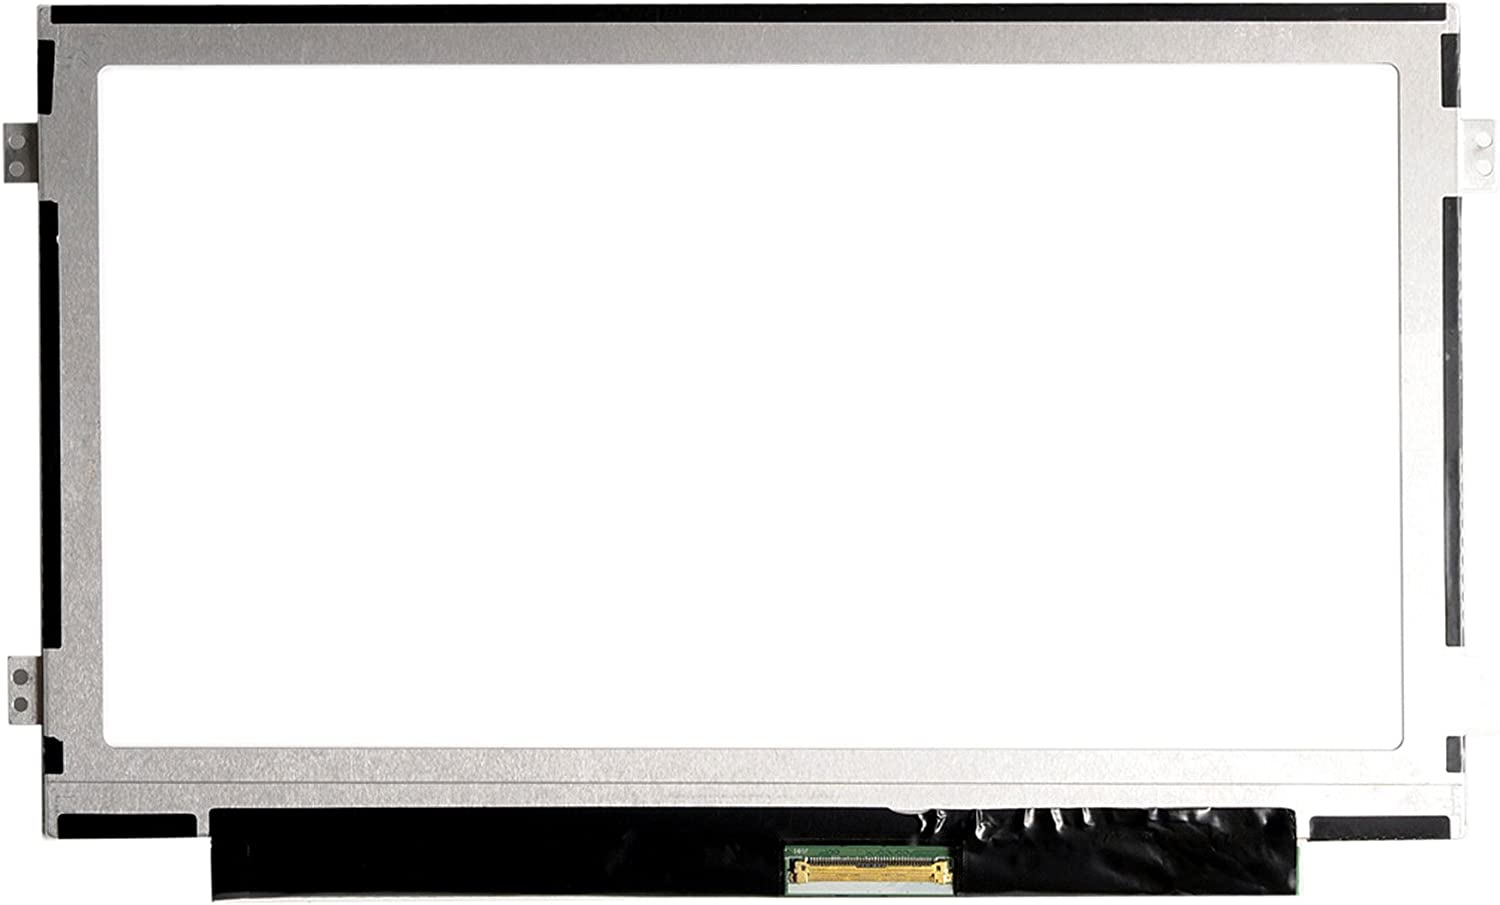 ACER ASPIRE ONE D257-1345 D257-1497 10.1 WSVGA 1024X600 LED Screen (LED Replacement Screen Only. Not A Laptop)